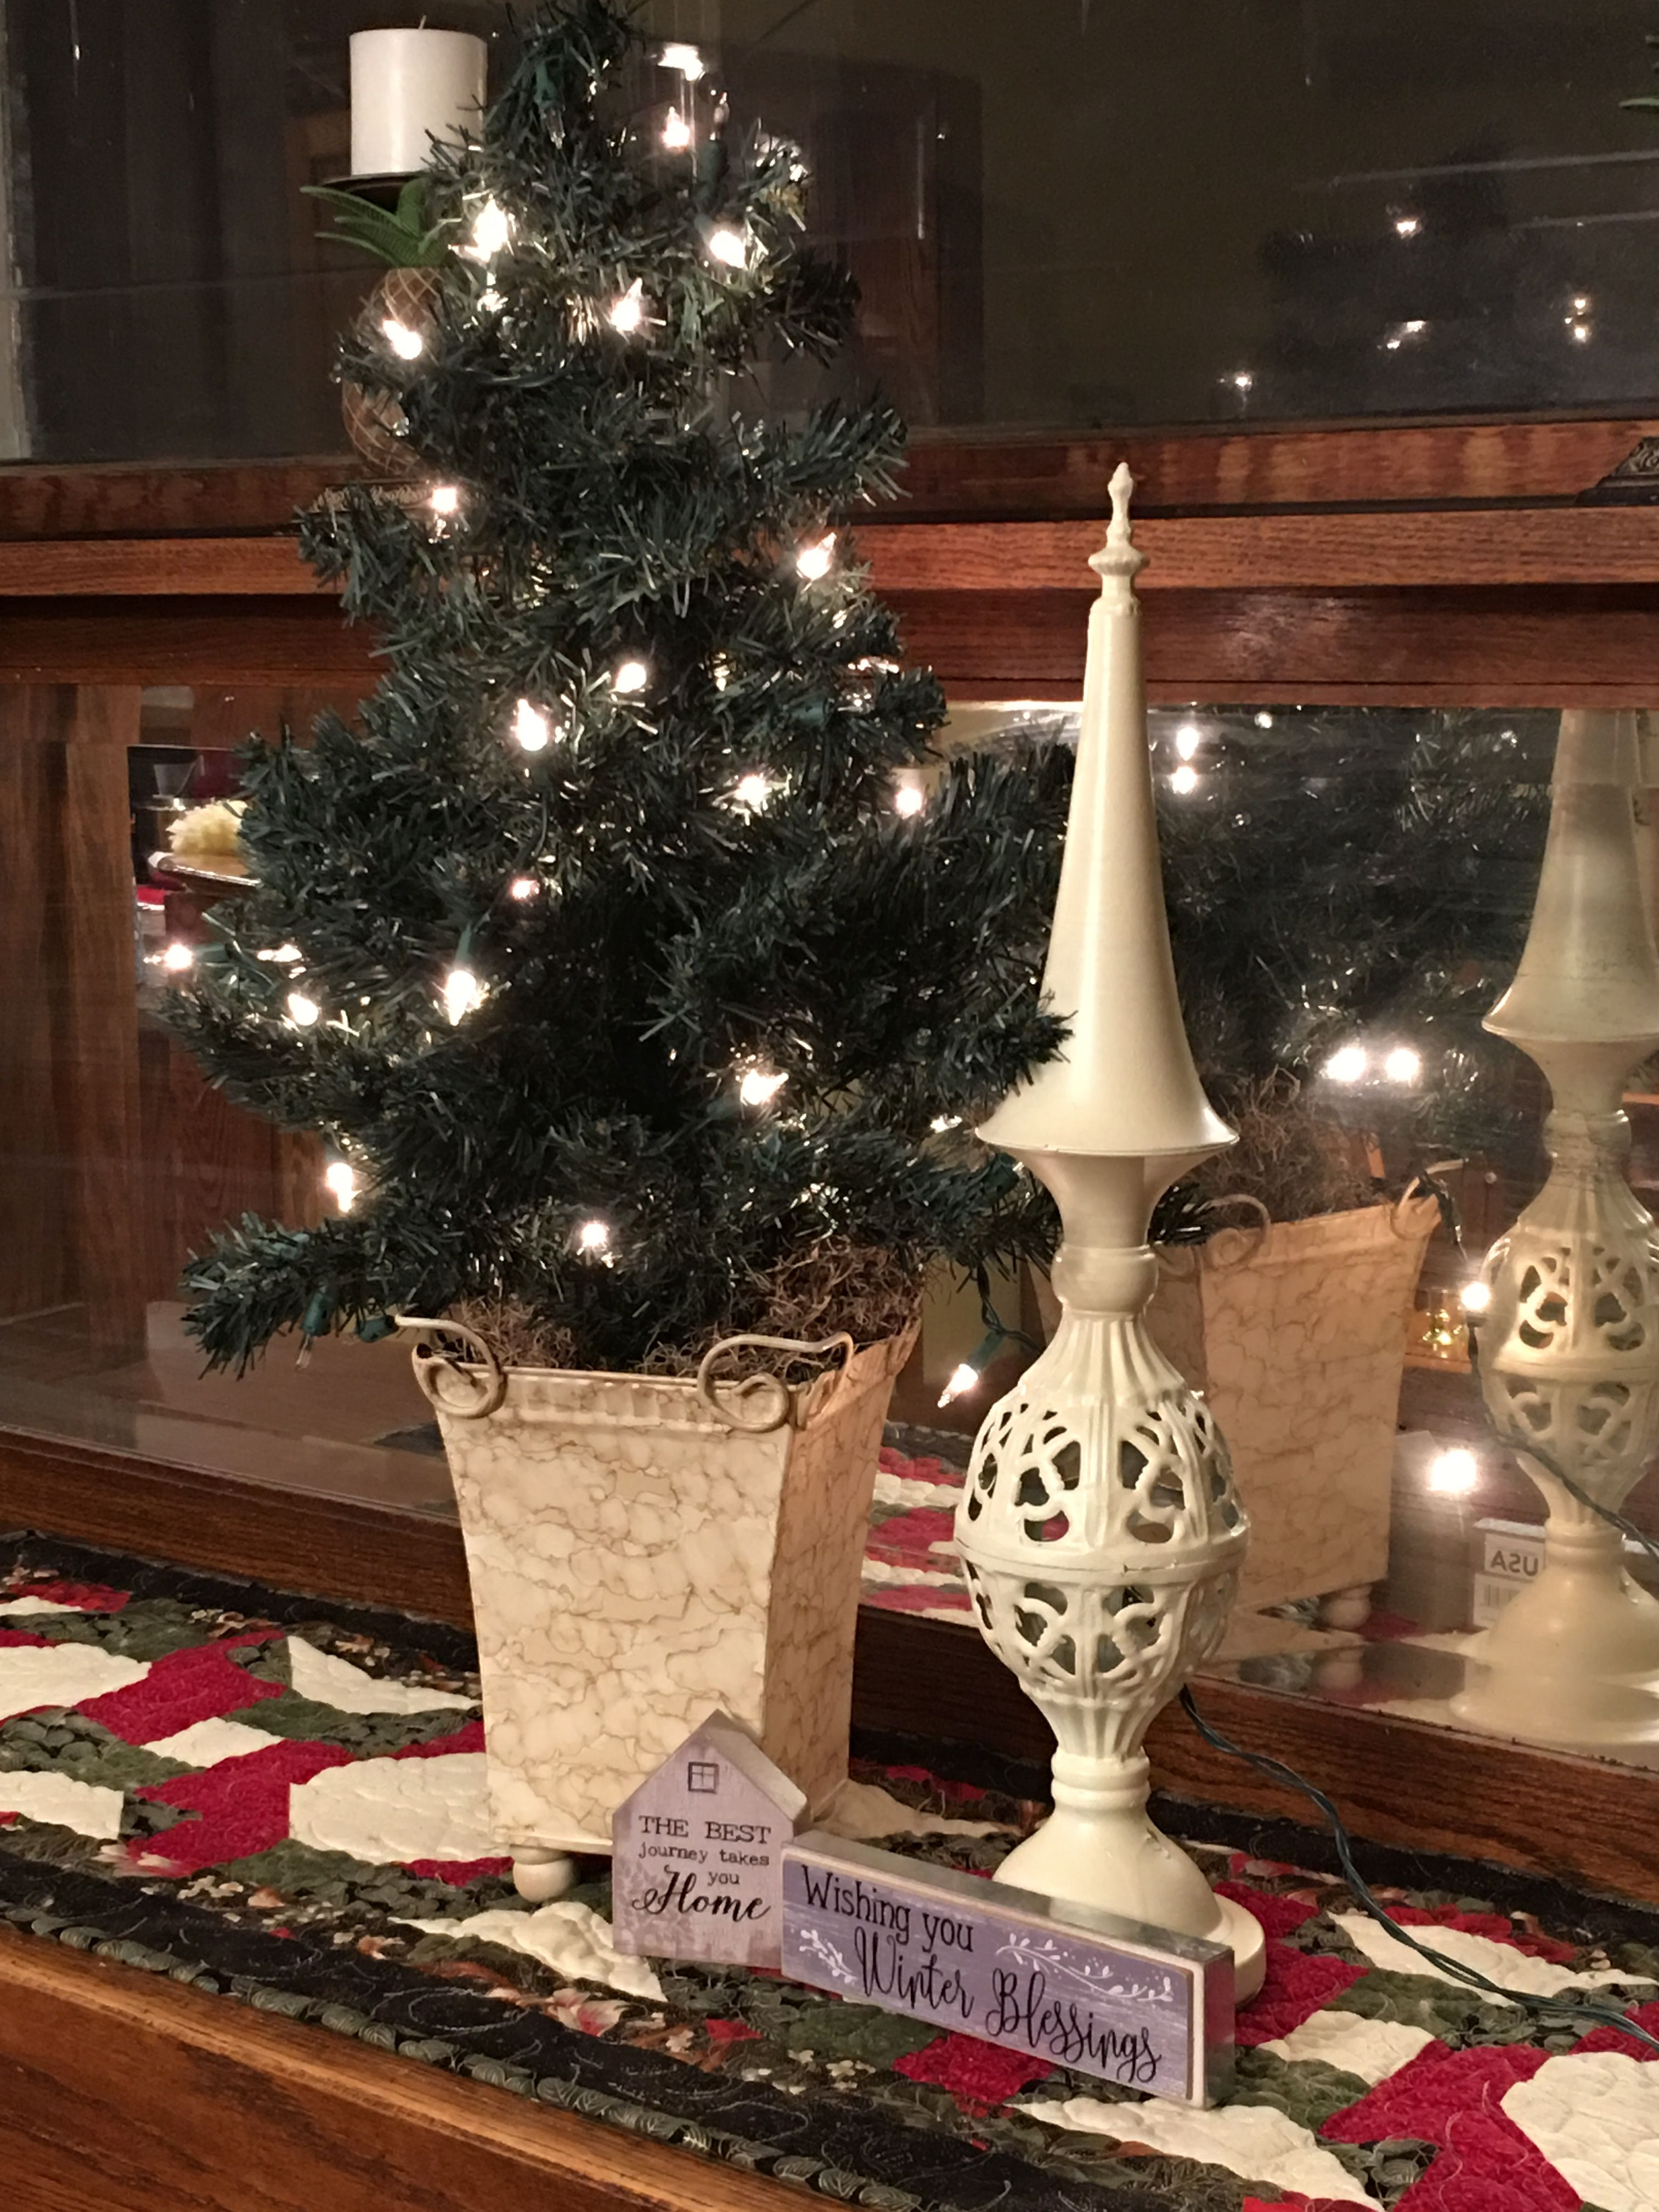 Pin By Peggy Fulton On Leafy Town Vintage Renewal Holiday Decor Christmas Tree Decor